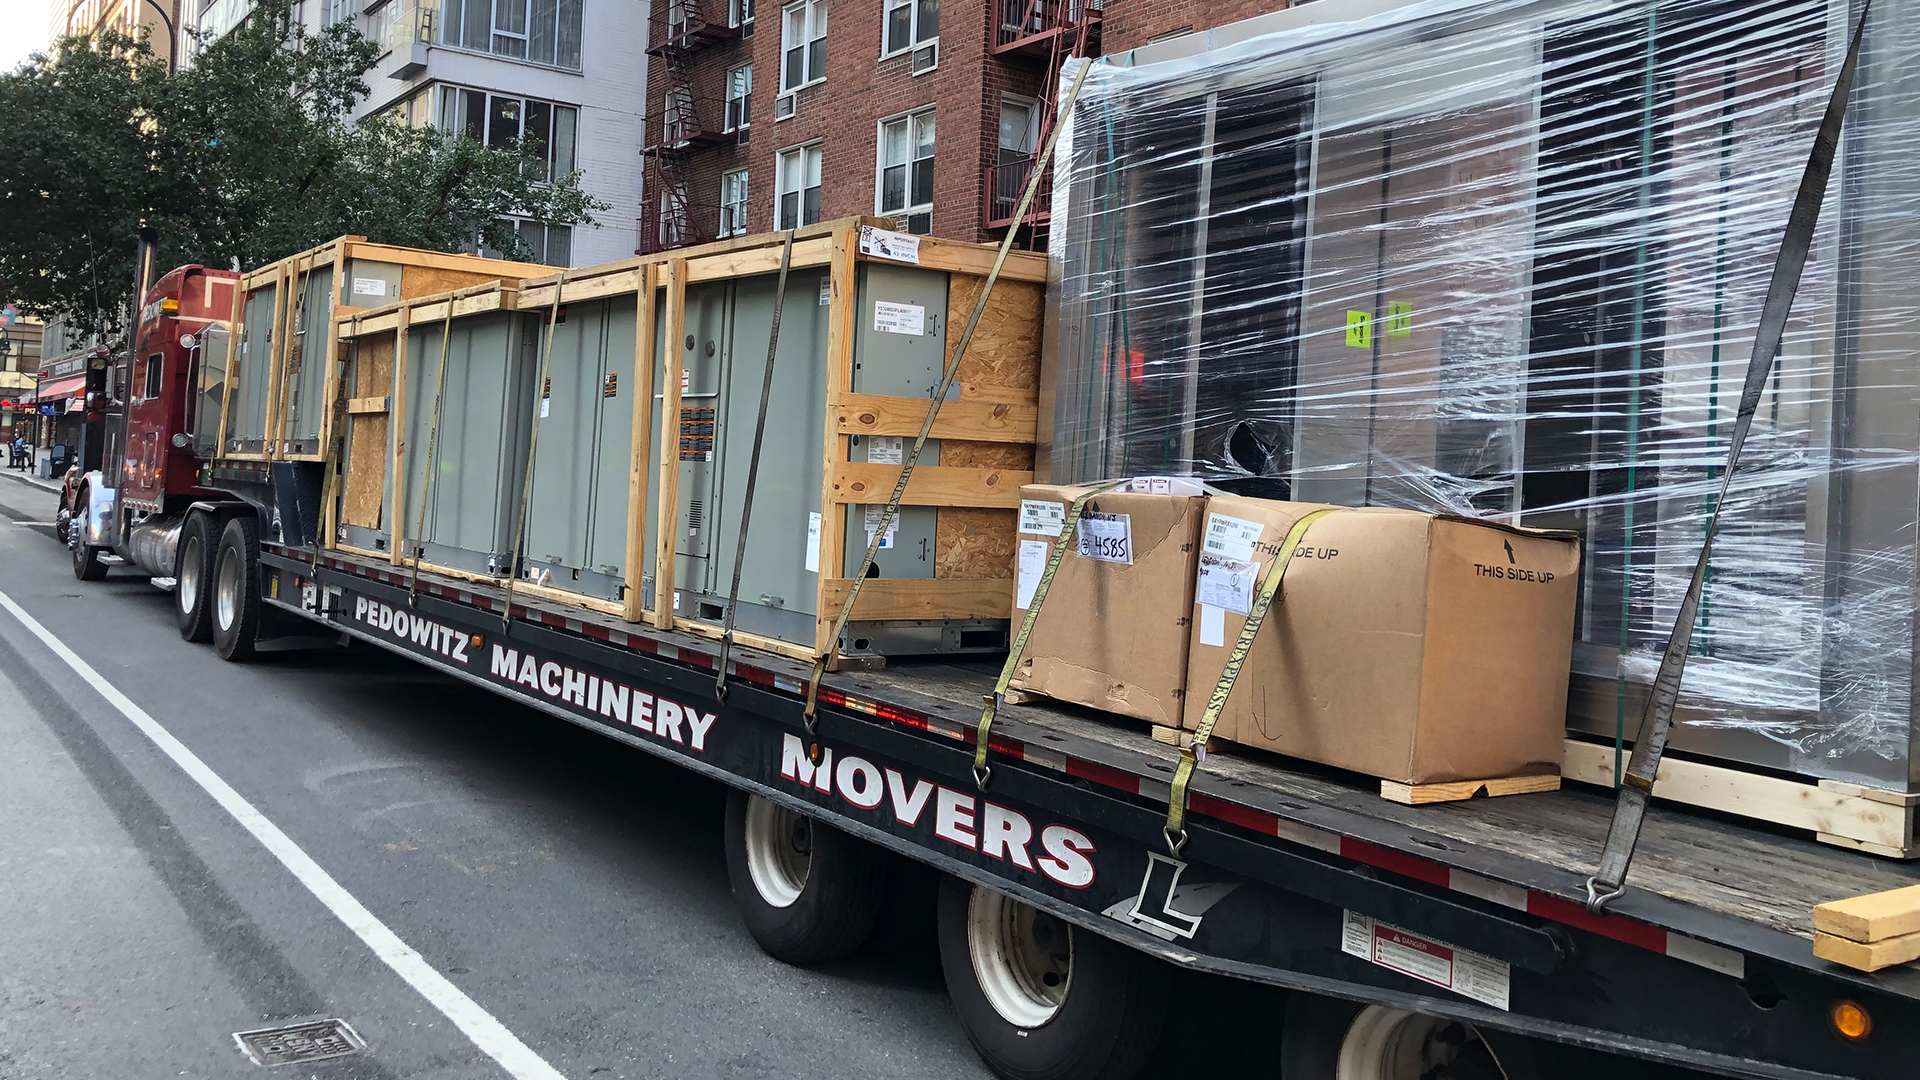 Pedowitz Machinery Movers Sliders 14th